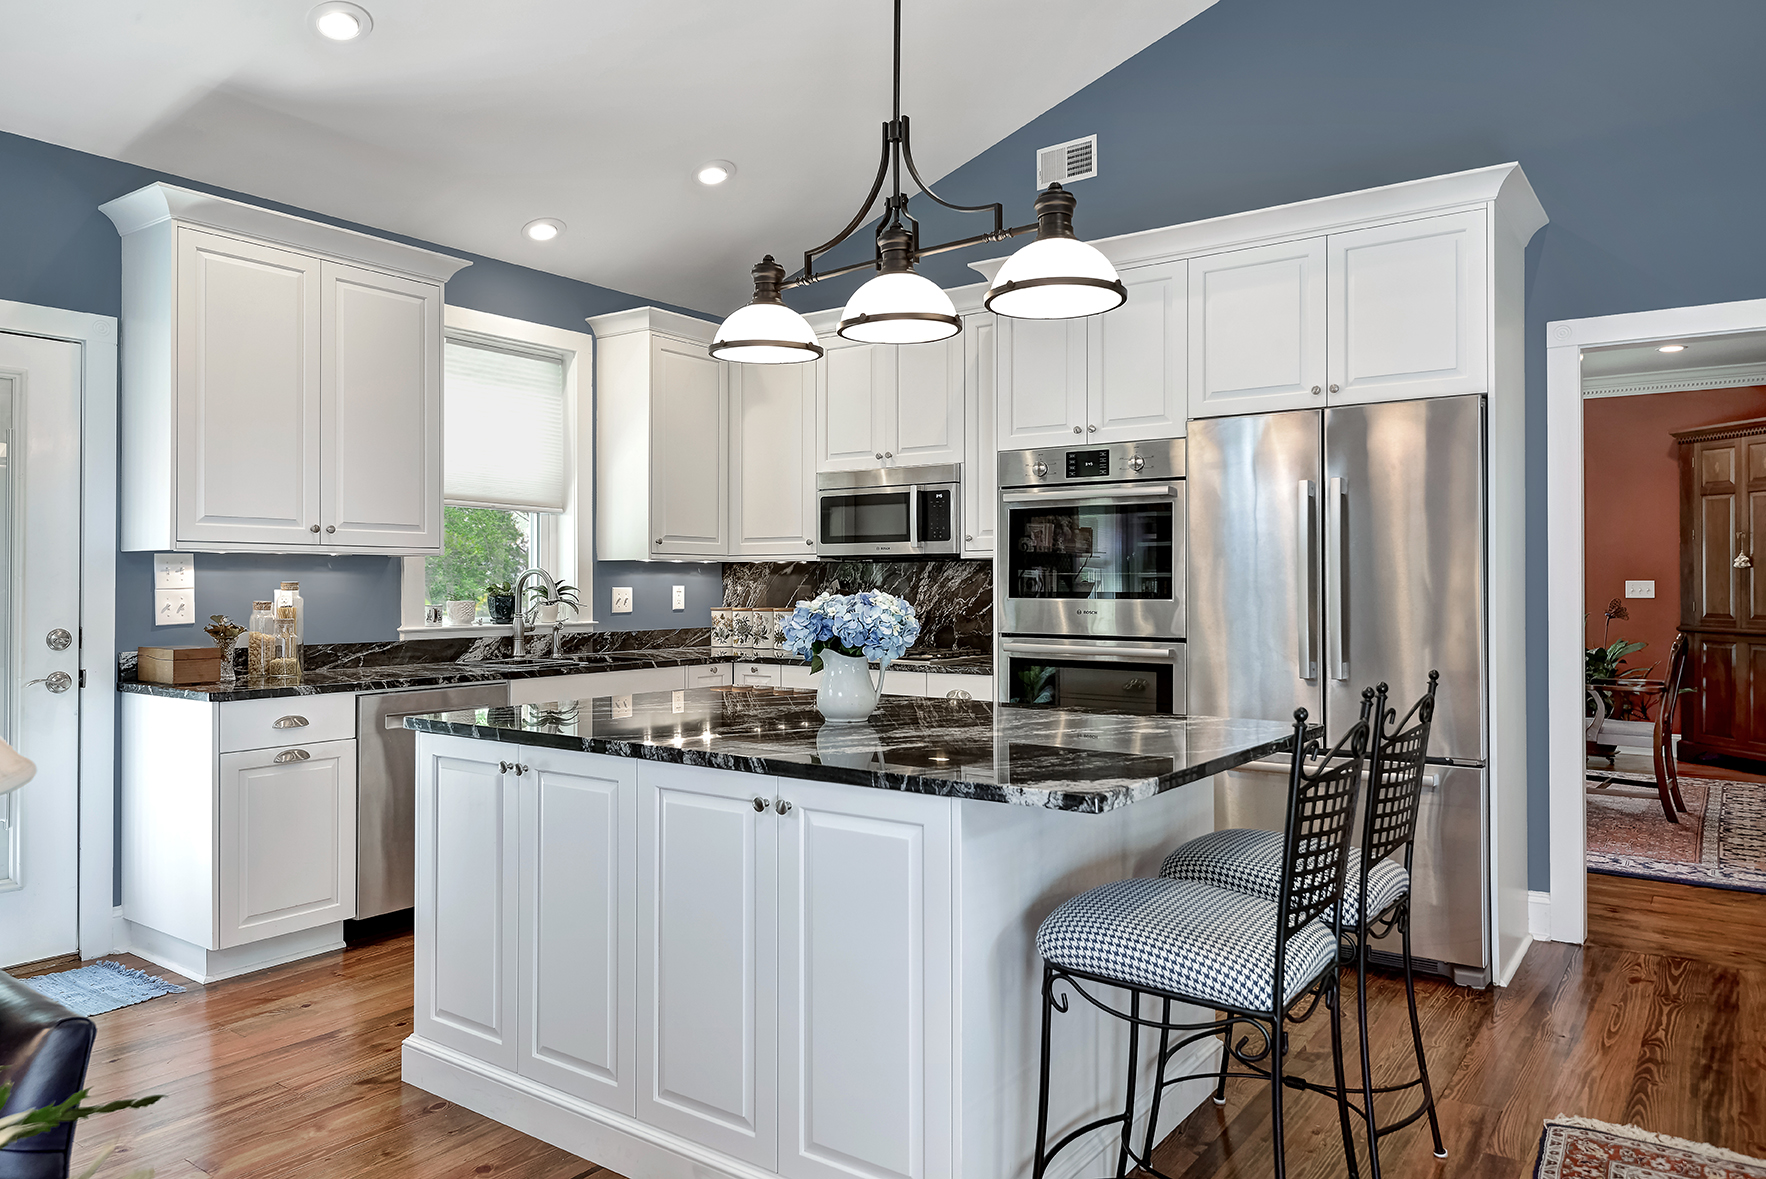 Summerville kitchen for aging in place